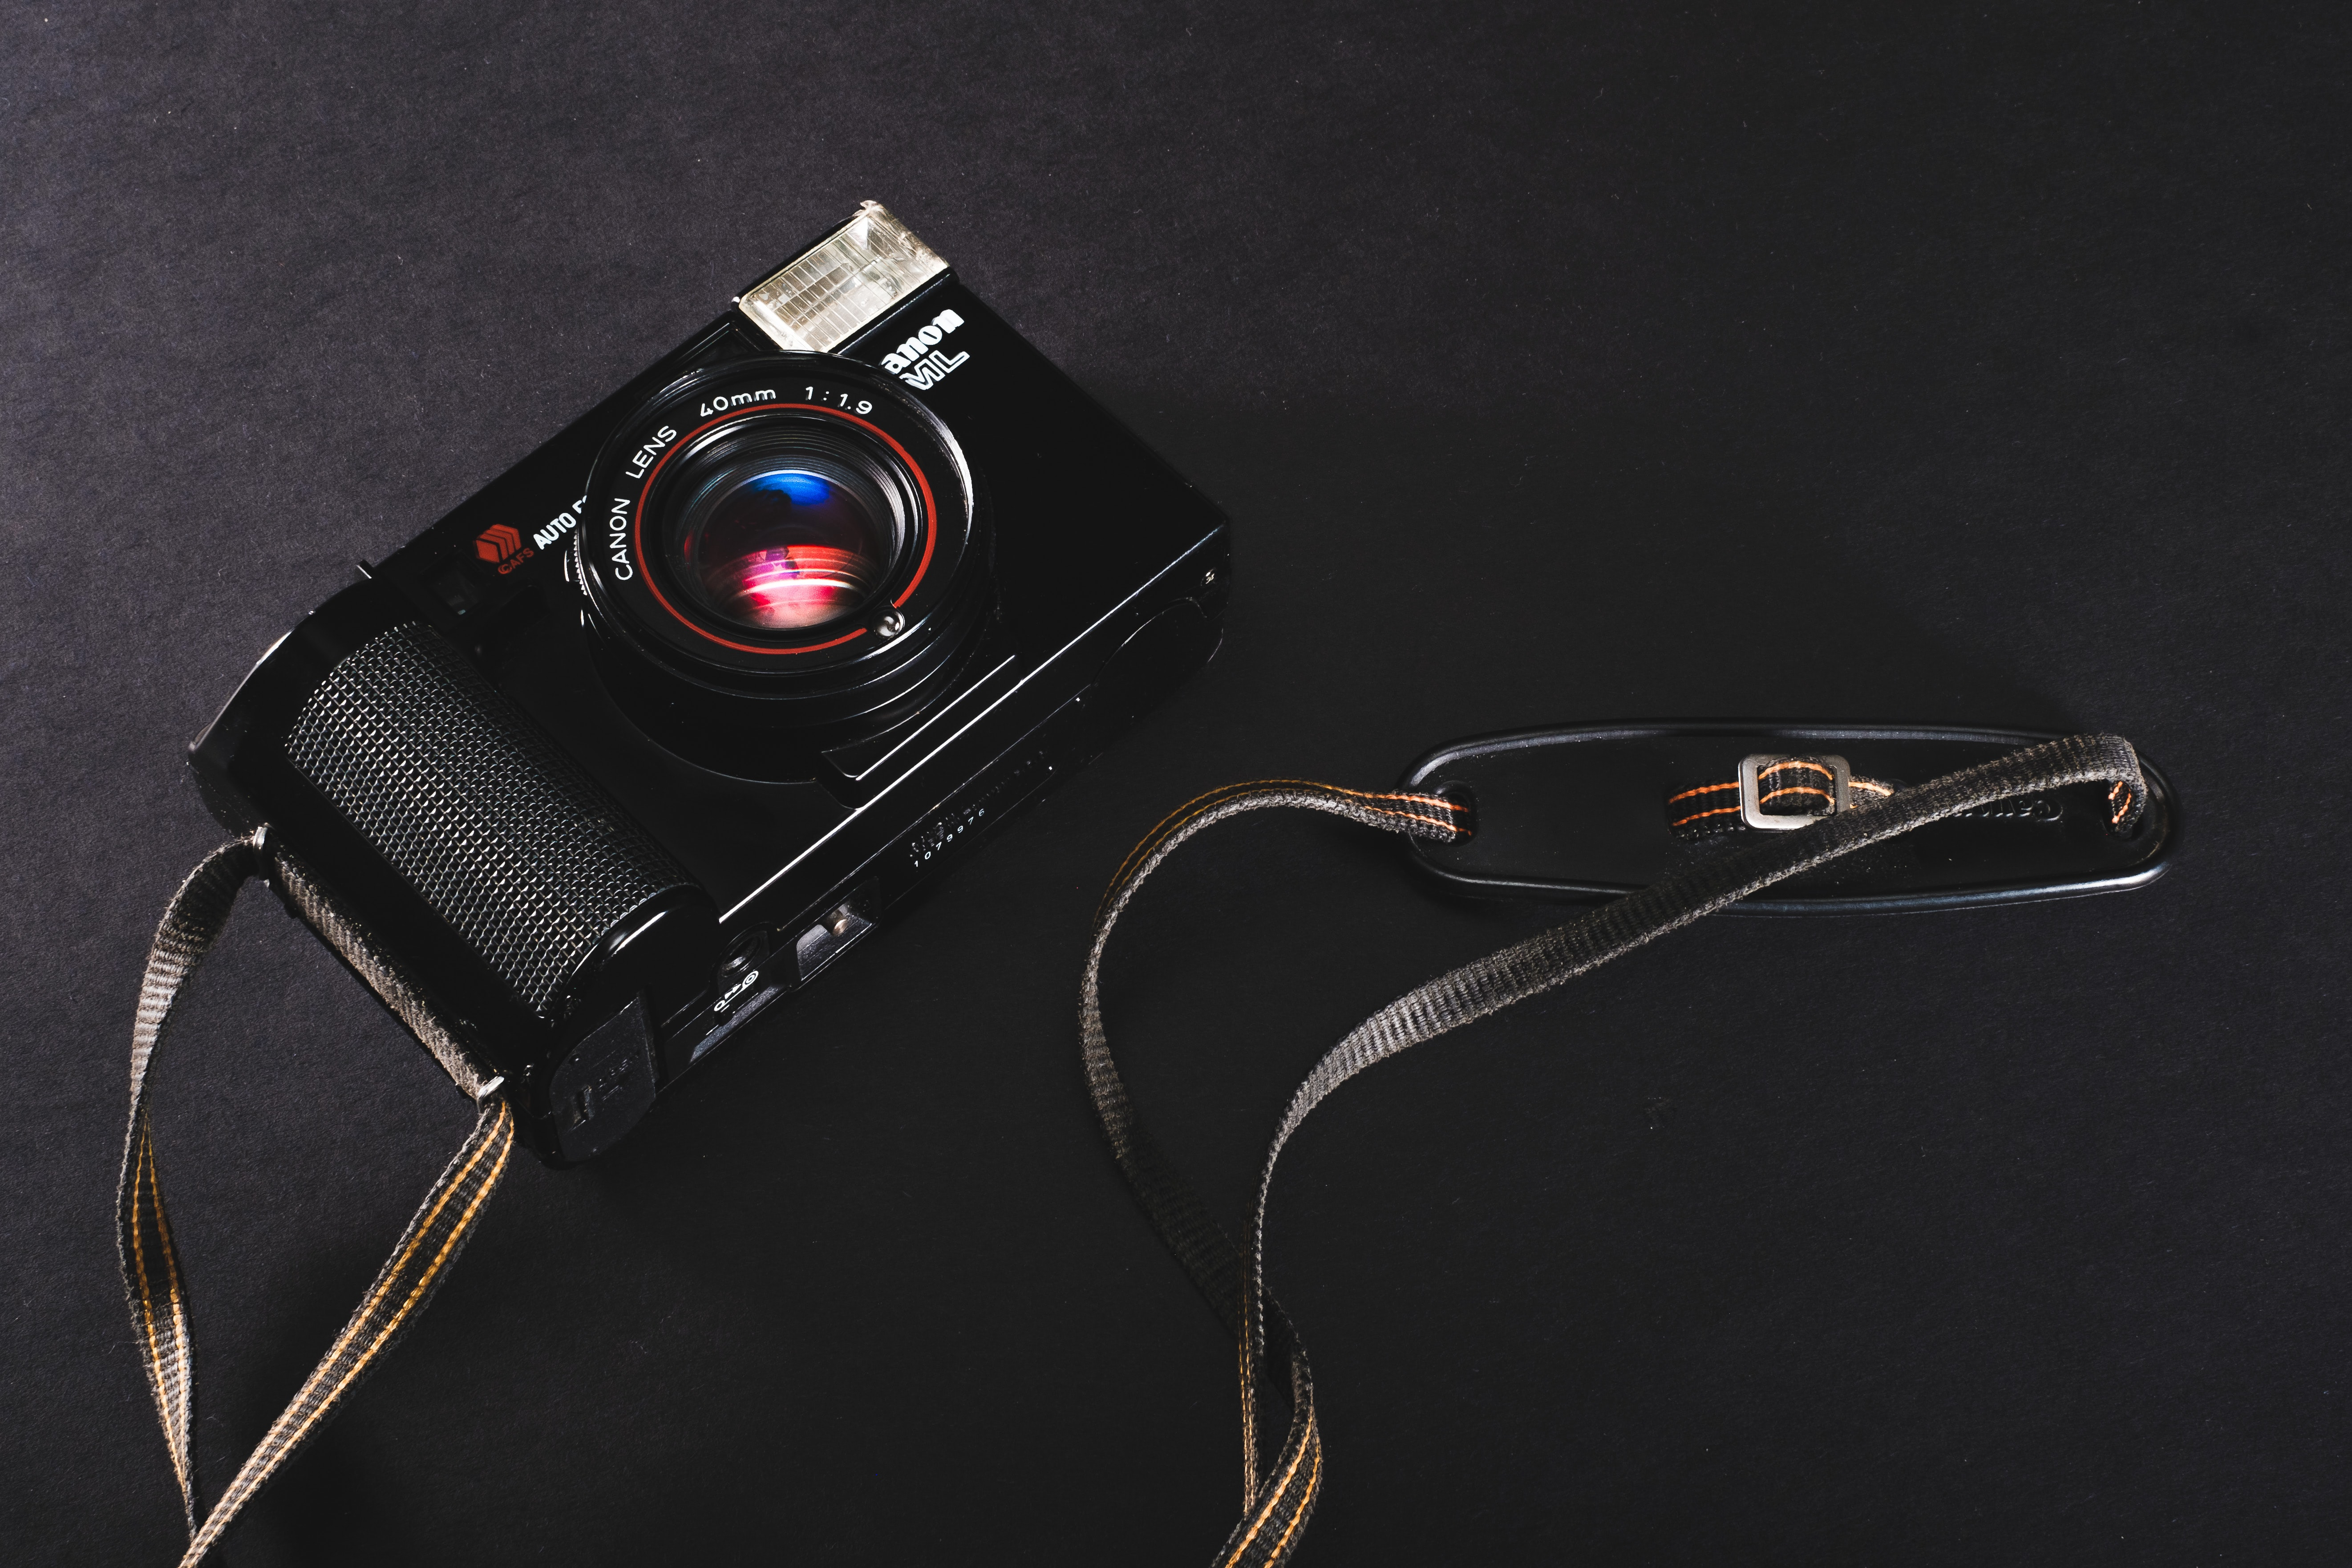 black and red compact camera on black surface